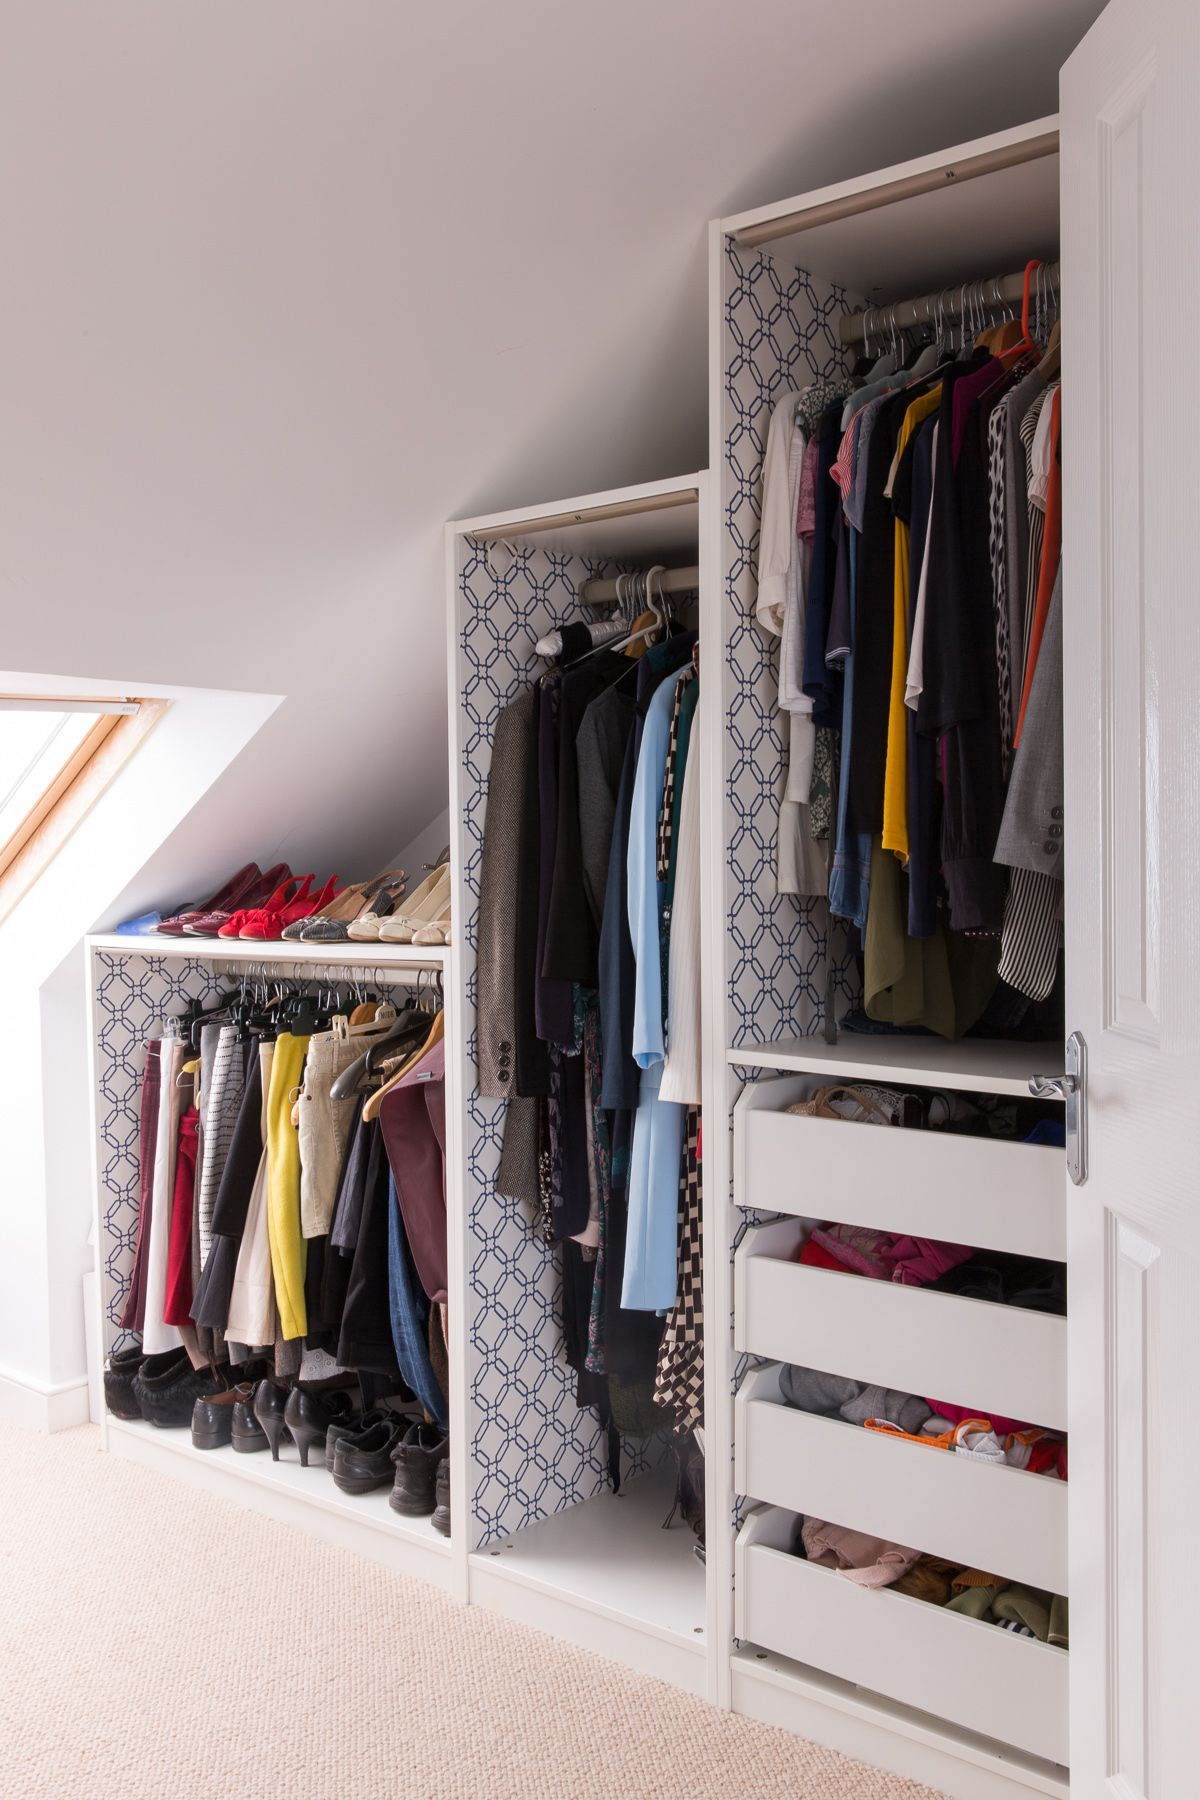 ikea wardrobe lighting. These Are Standard Ikea Pax Wardrobes Cut Down To Fit The Space - A Very Economical Way Get Bespoke Wardrobe. Adding Wallpaper Inside Wardrobe Lighting D